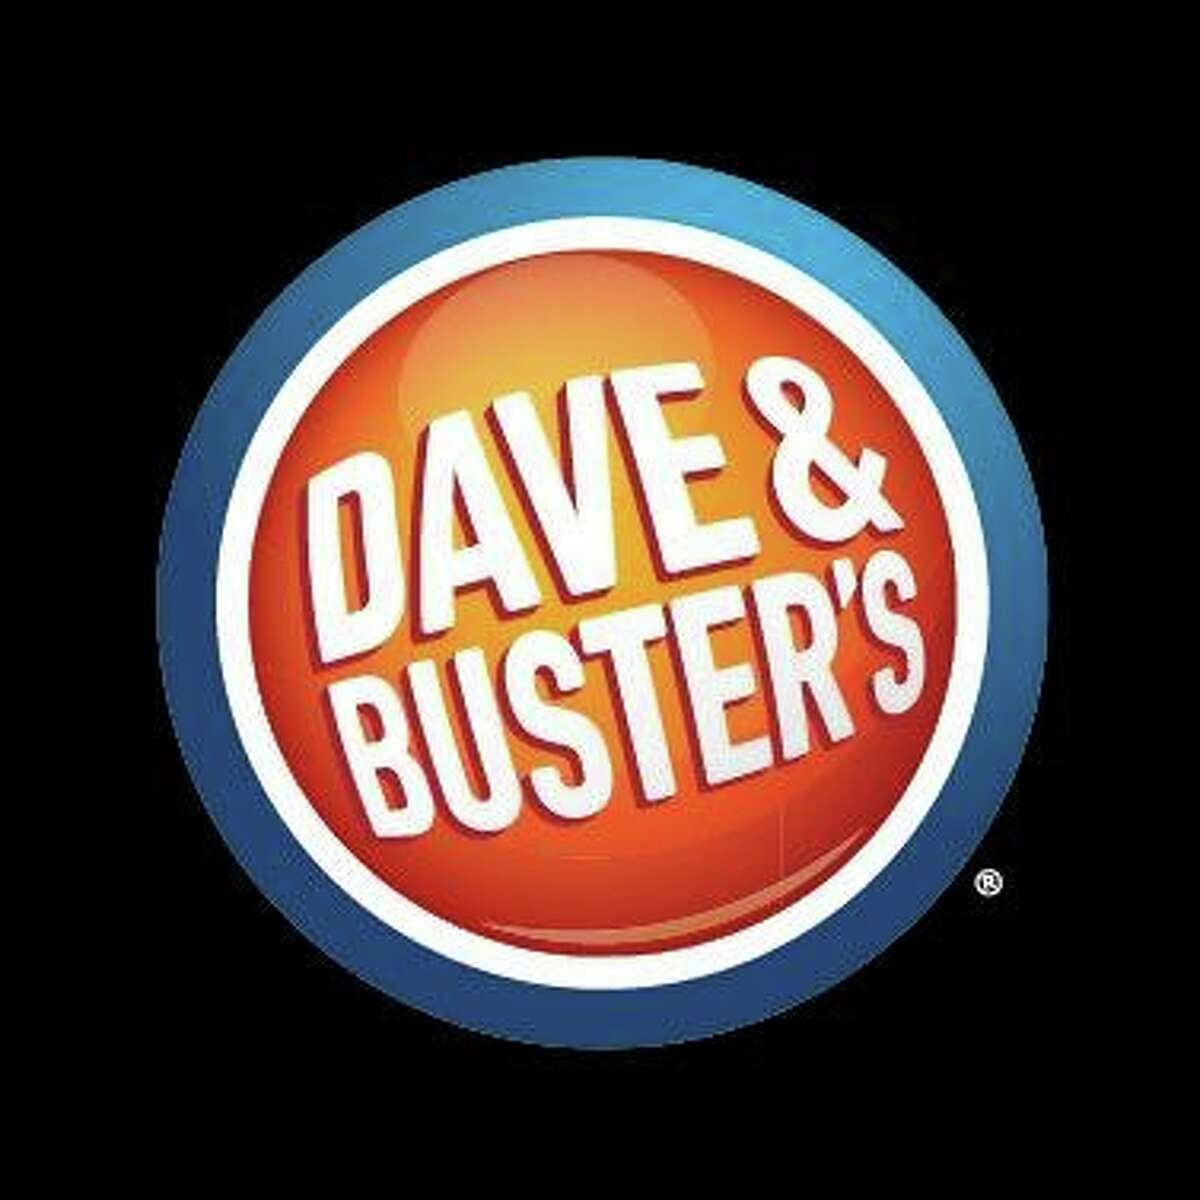 Dave & Busters (Shops at Rivercenter): 849 E. Commerce St. Date: 02/20/2020Score 86Highlights: Inspectors observed an insect inside a container of chips. Observed a roach and fruit flies in the dish wash area. There was food debris on utensils that were available for use. Also observed debris on a food storage container. Chips were stored in a container without a lid, cover, or wrapping. There was an accumulation inside the ice machine that needed to be cleaned. Food debris was seen on a deli slicer.